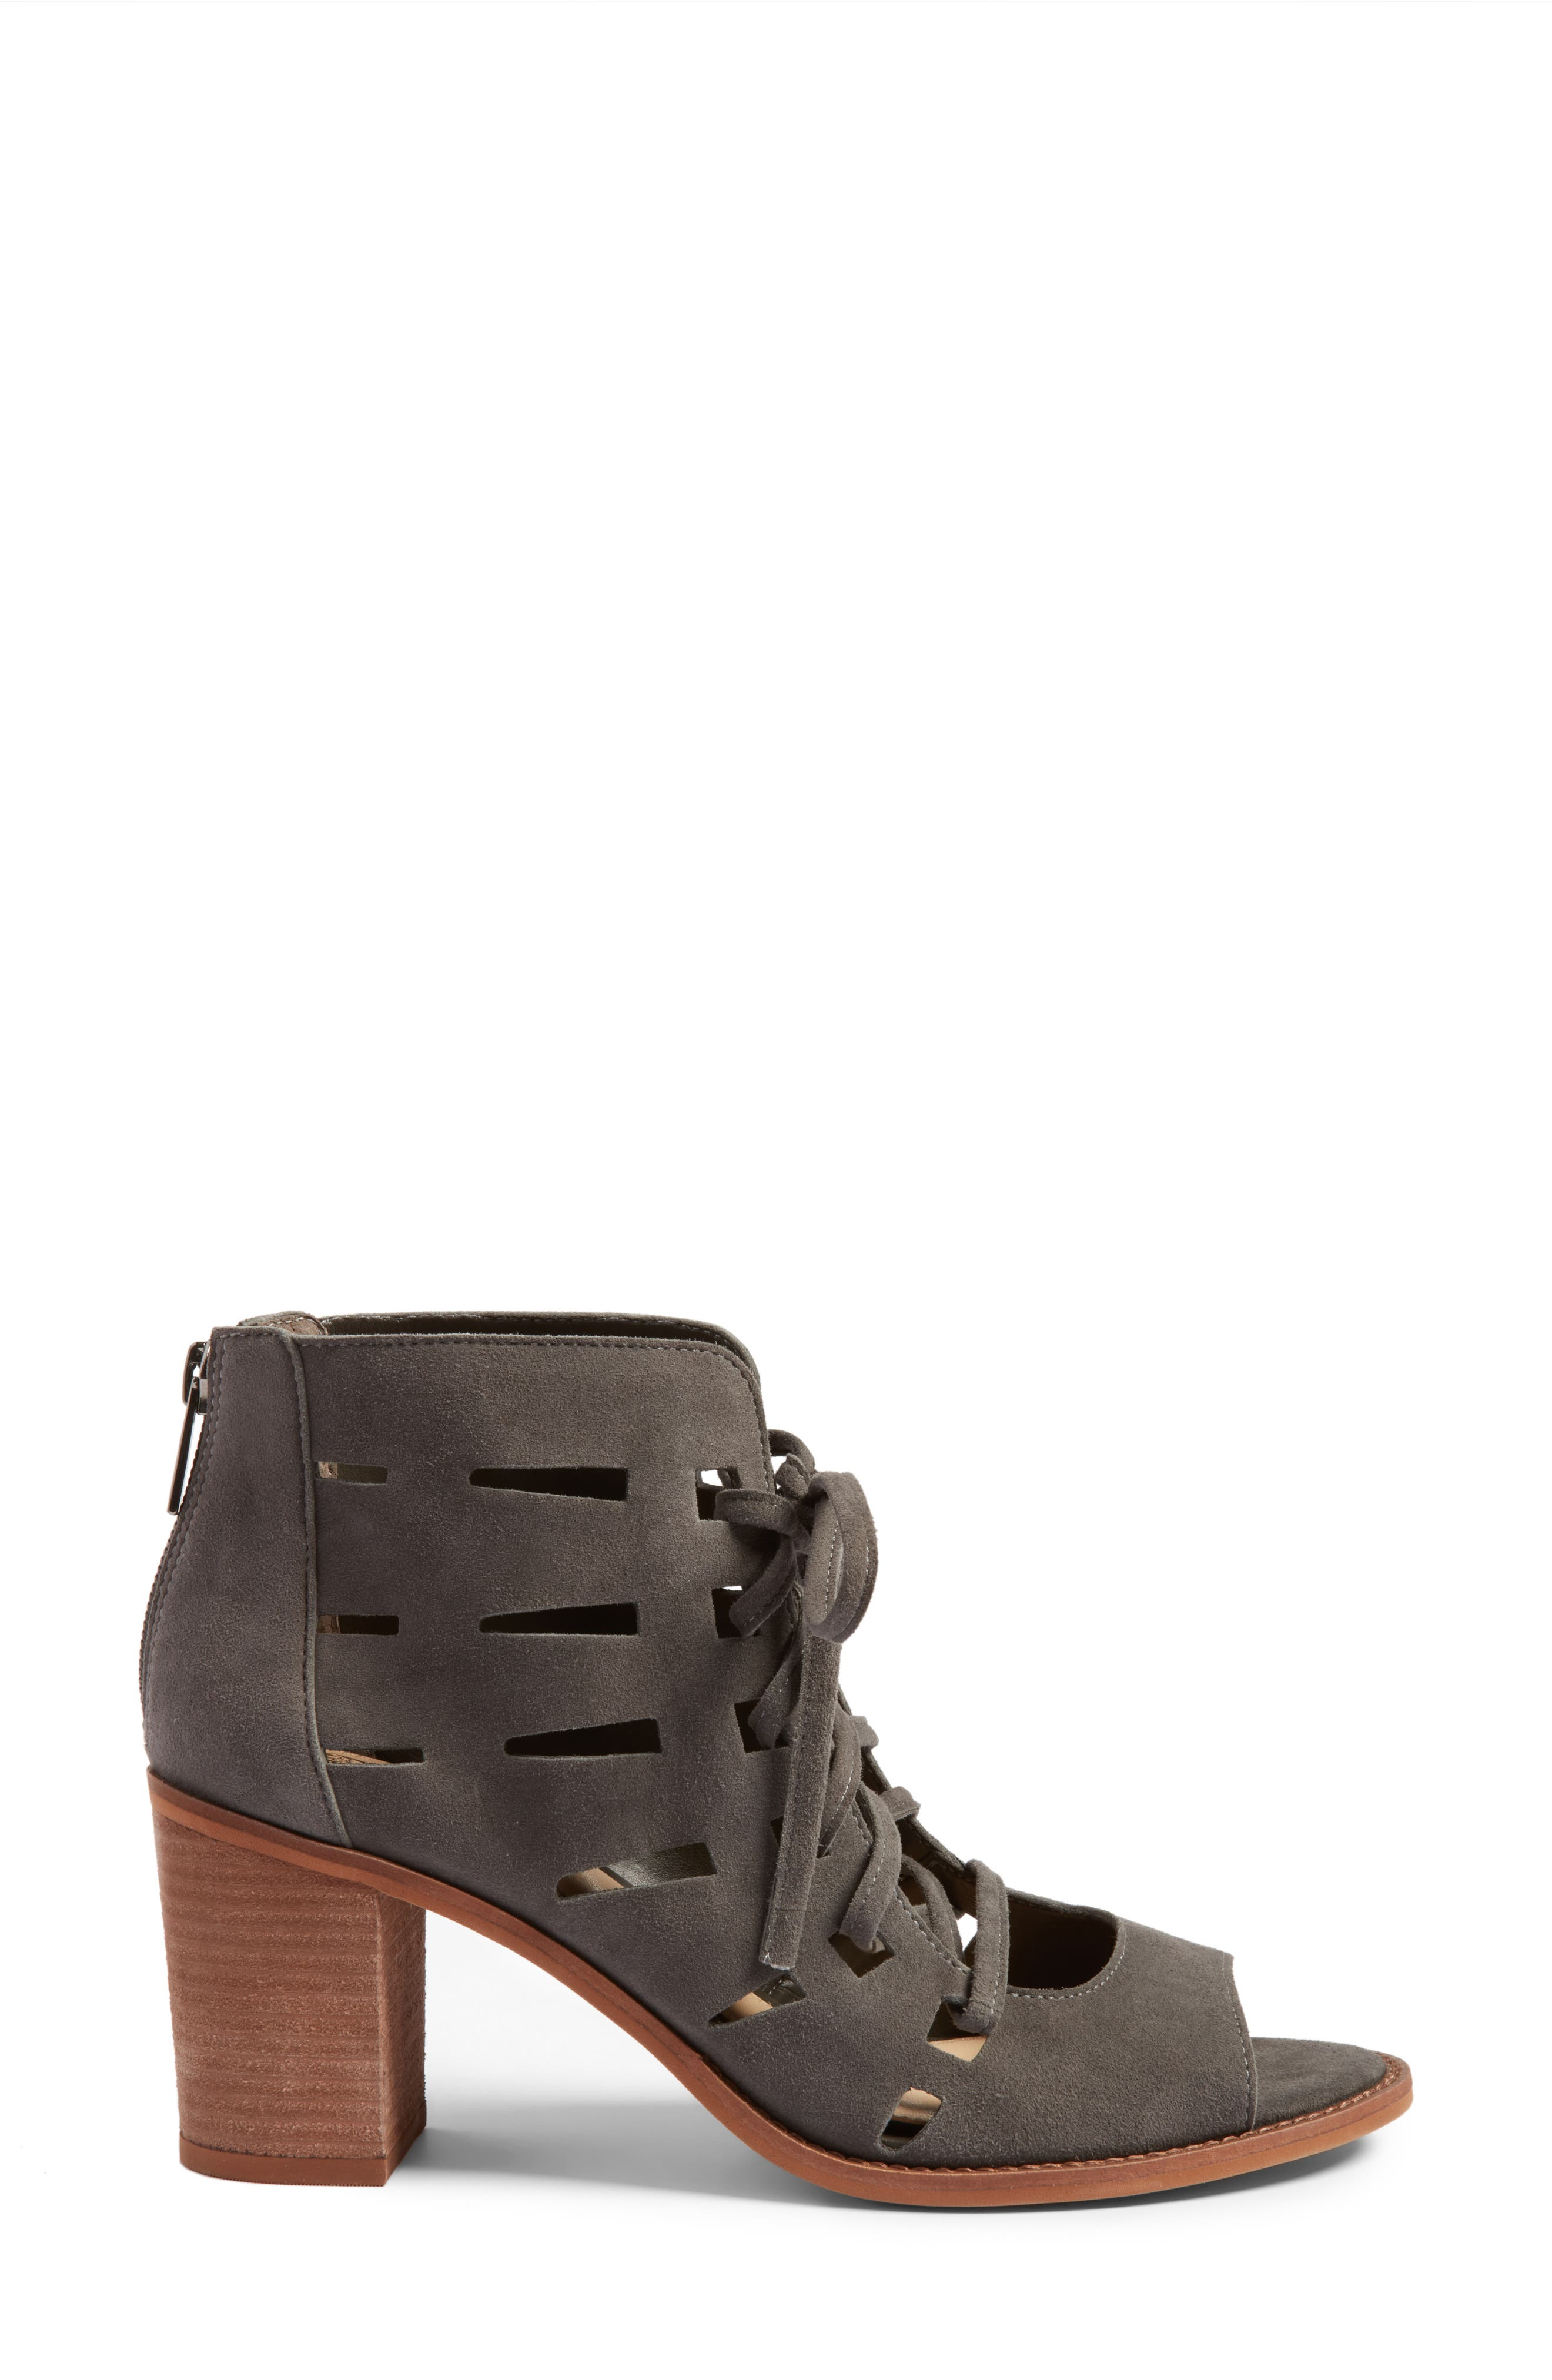 Alternate Image 3  - Vince Camuto Tressa Perforated Lace-Up Sandal (Women)